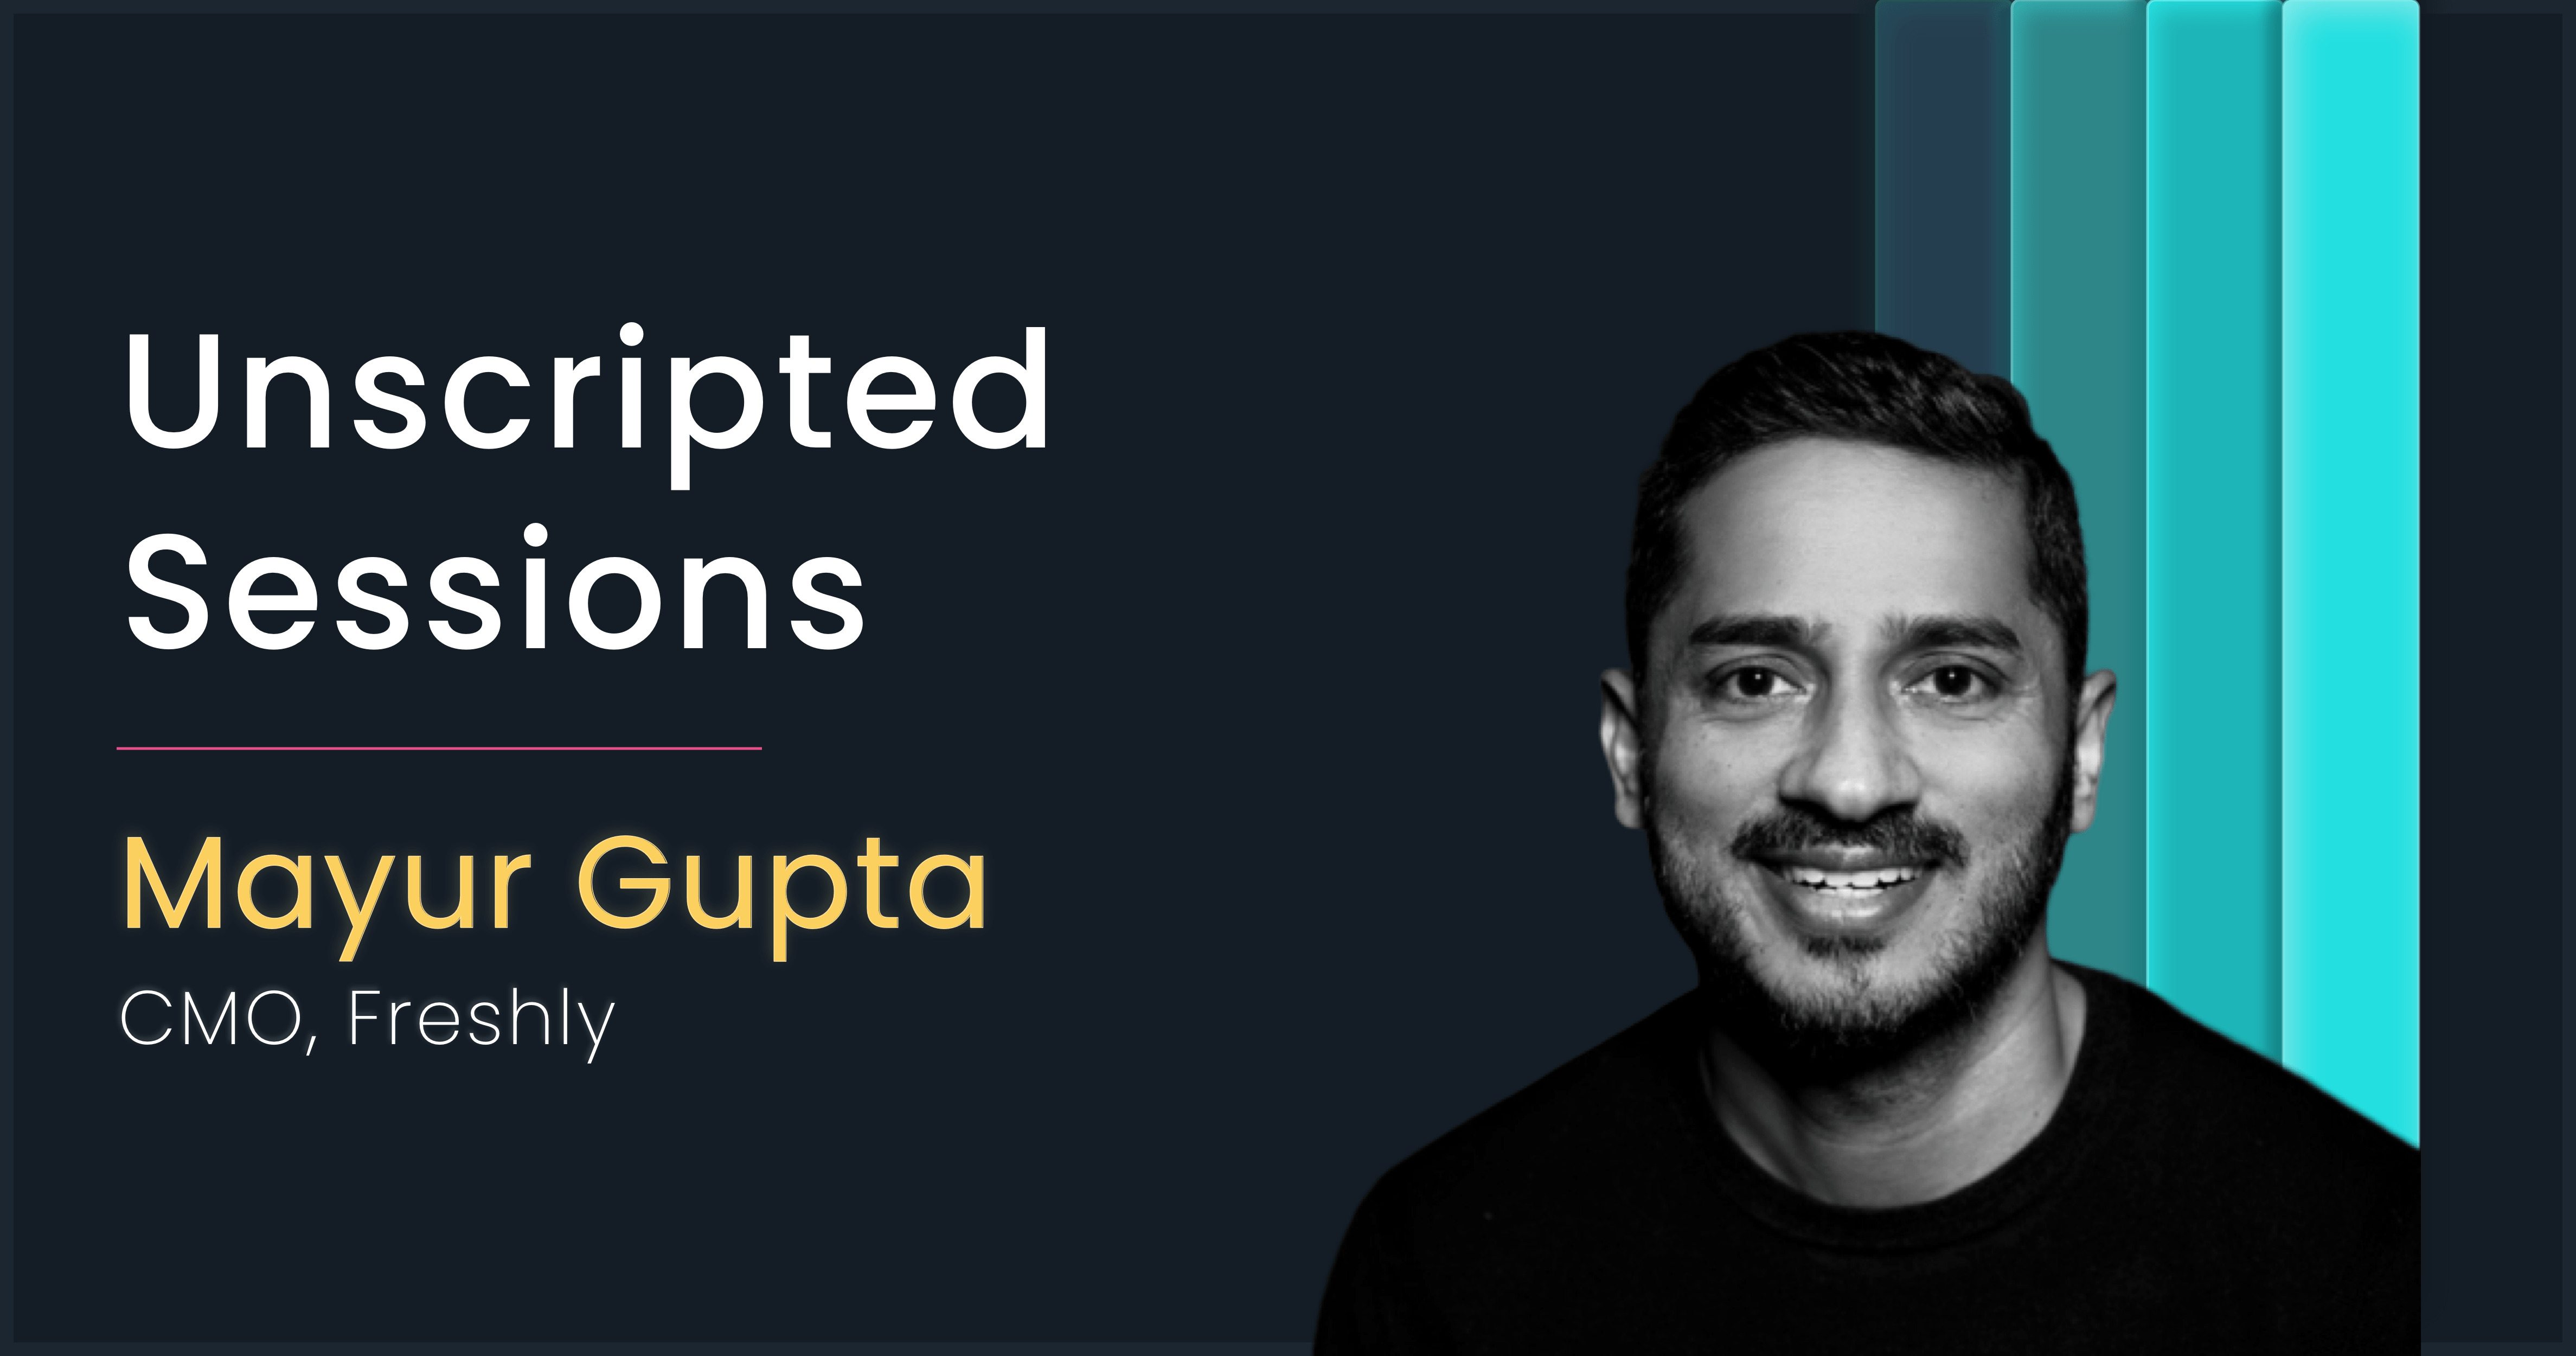 Unscripted Sessions with Mayur Gupta, Freshly